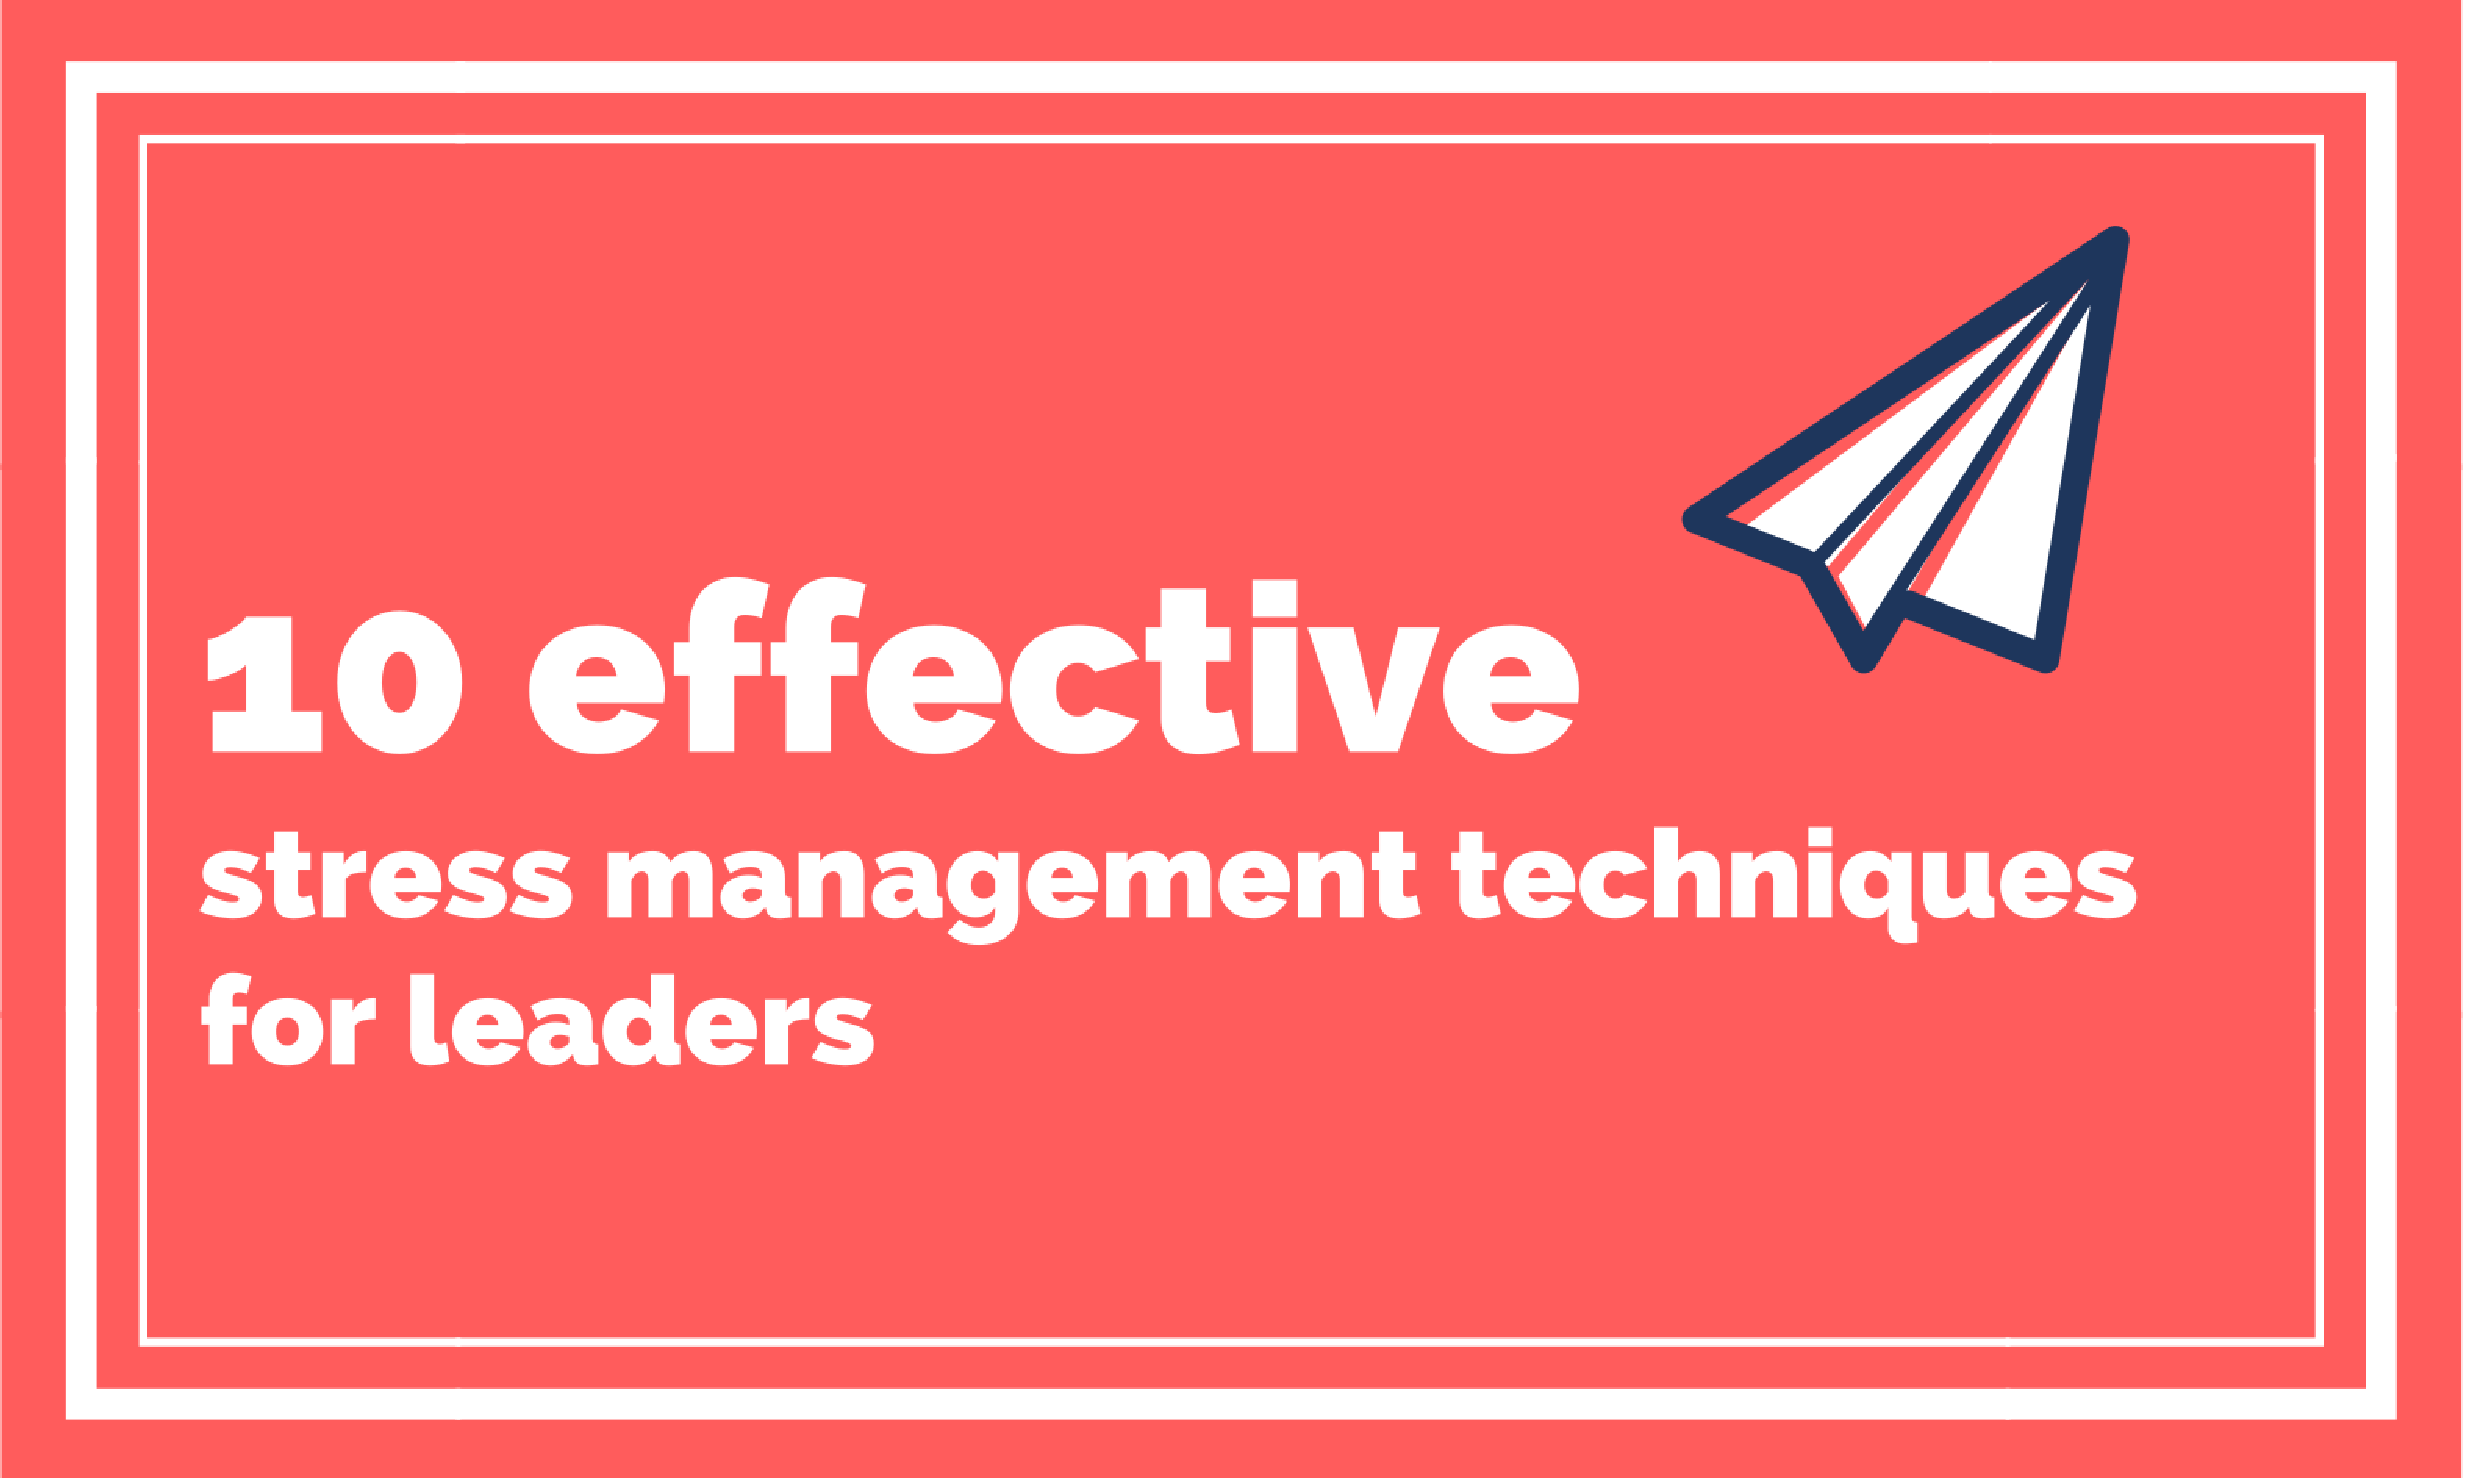 10 Effective Stress Management Techniques For Leaders